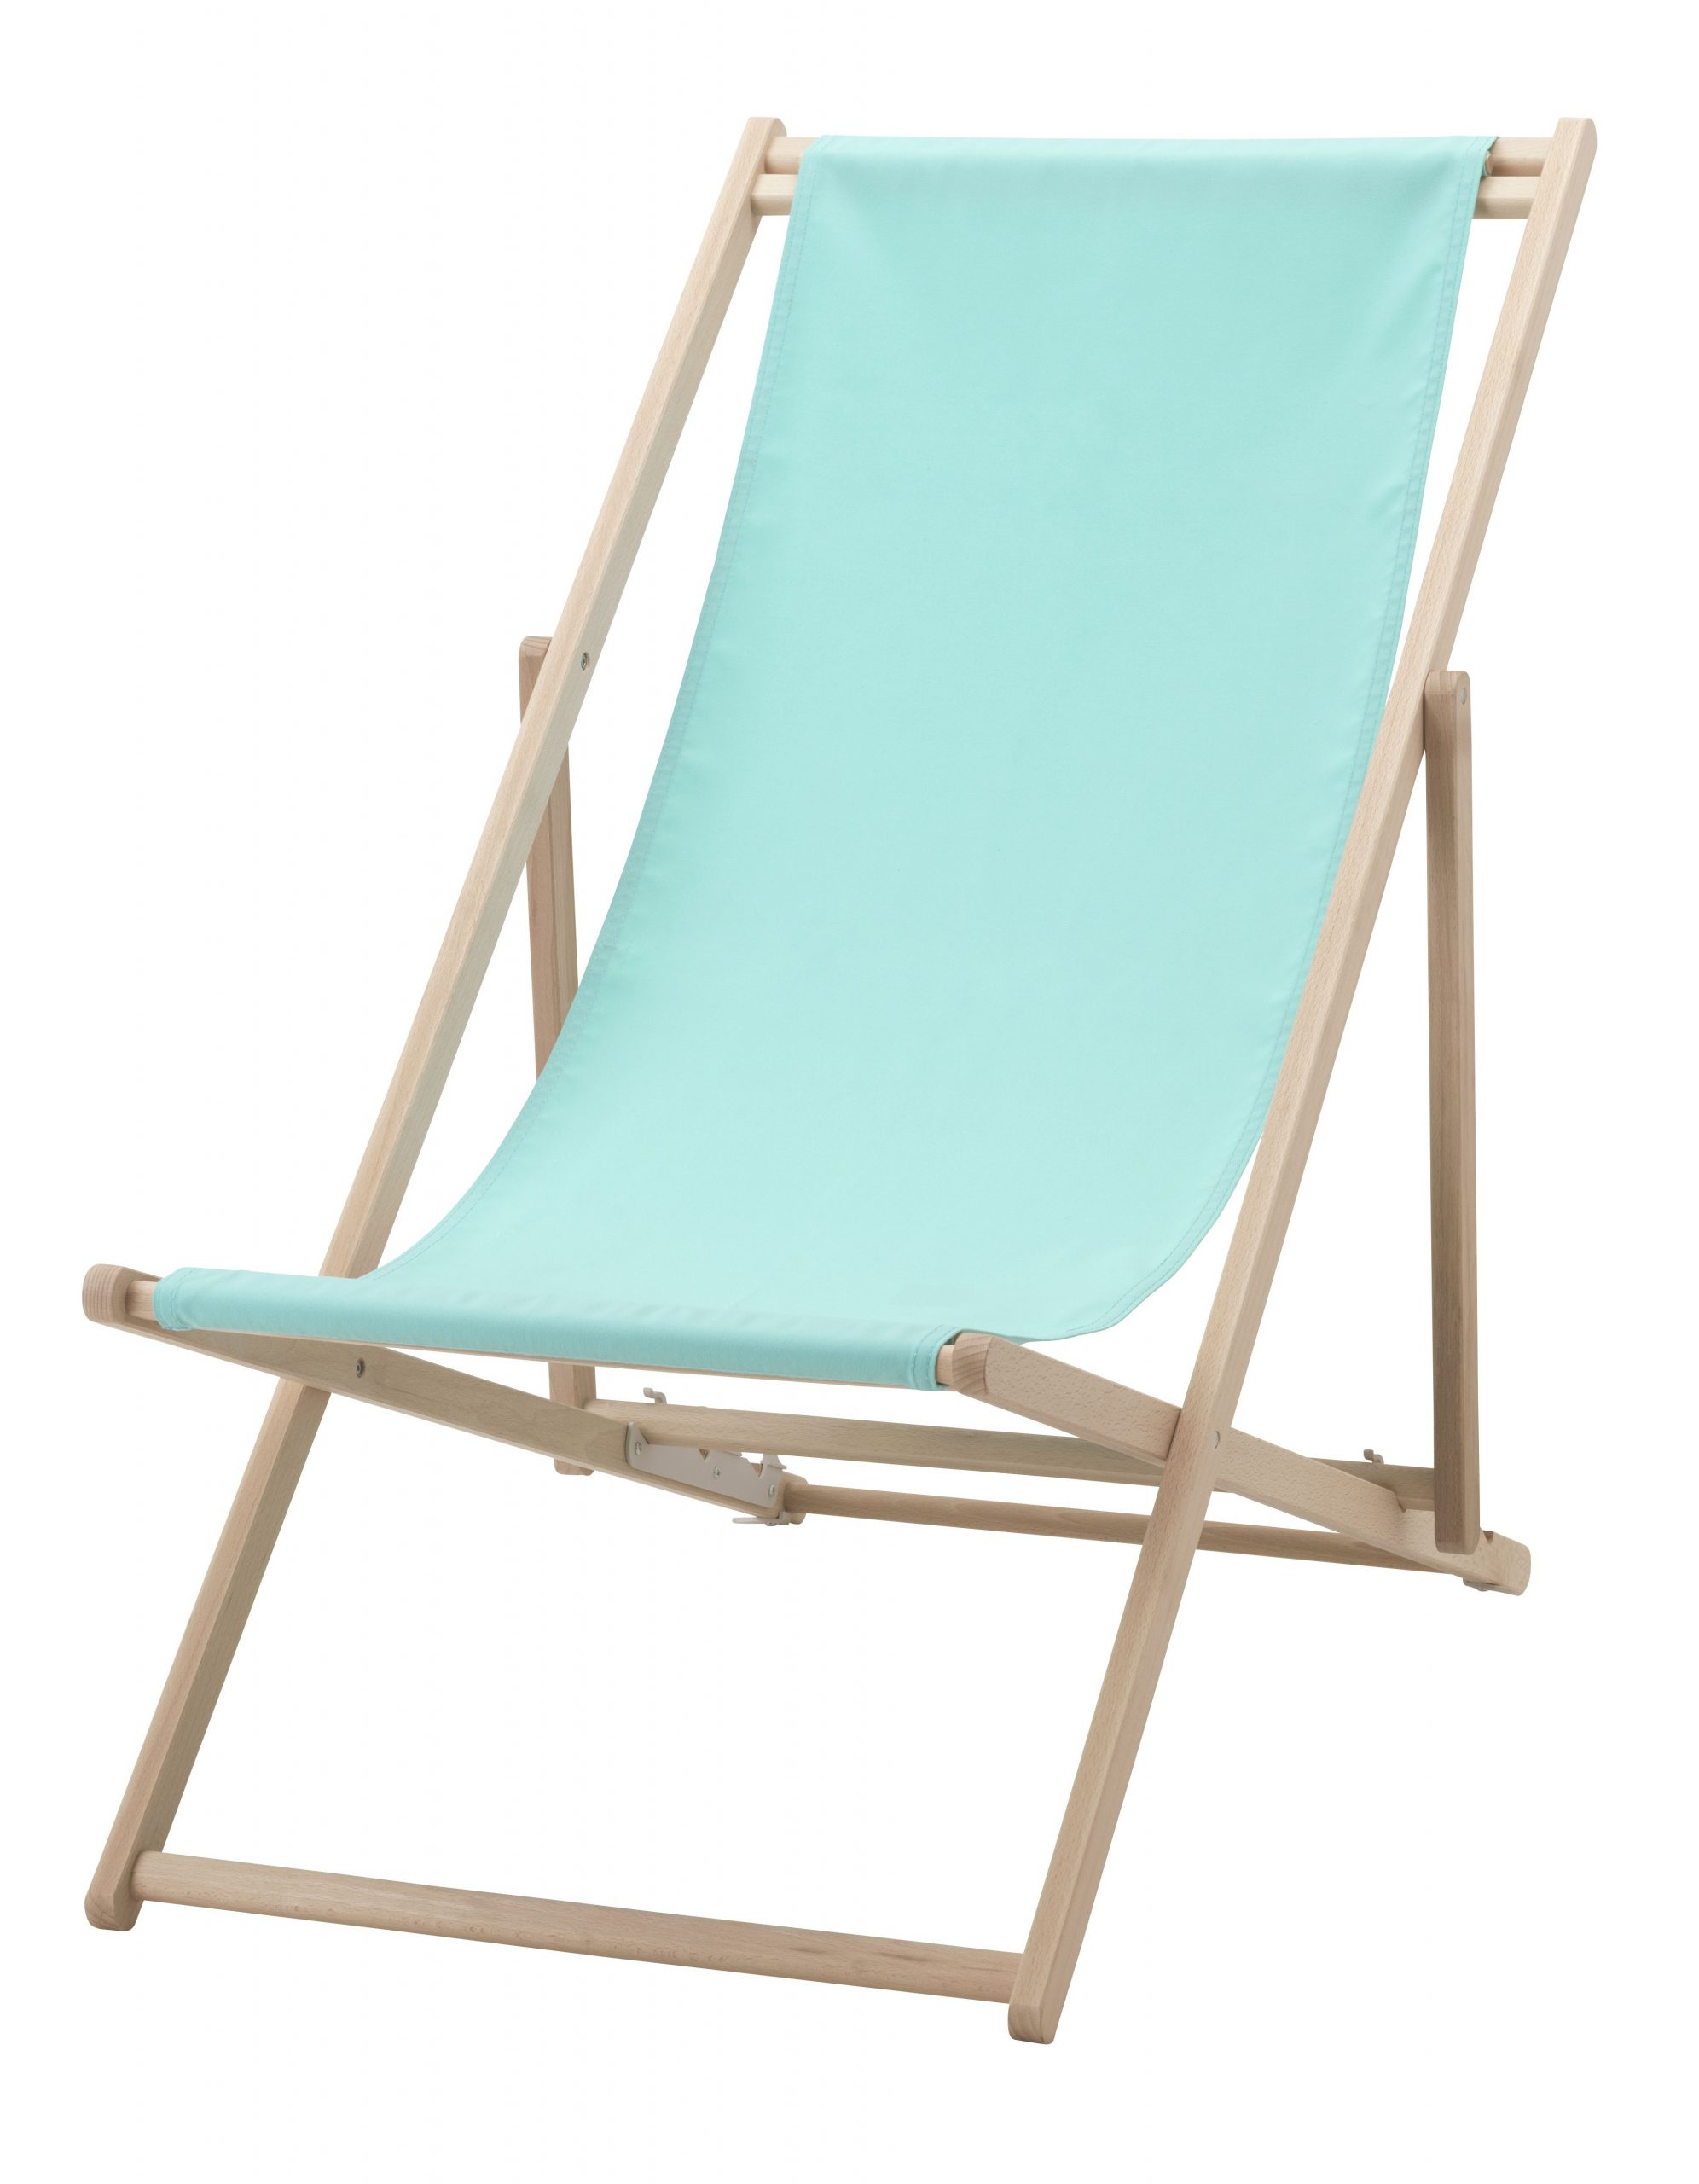 Ikea's New Summer Line Is Here To Make Us Wish Winter Would ... concernant Transat Ikea